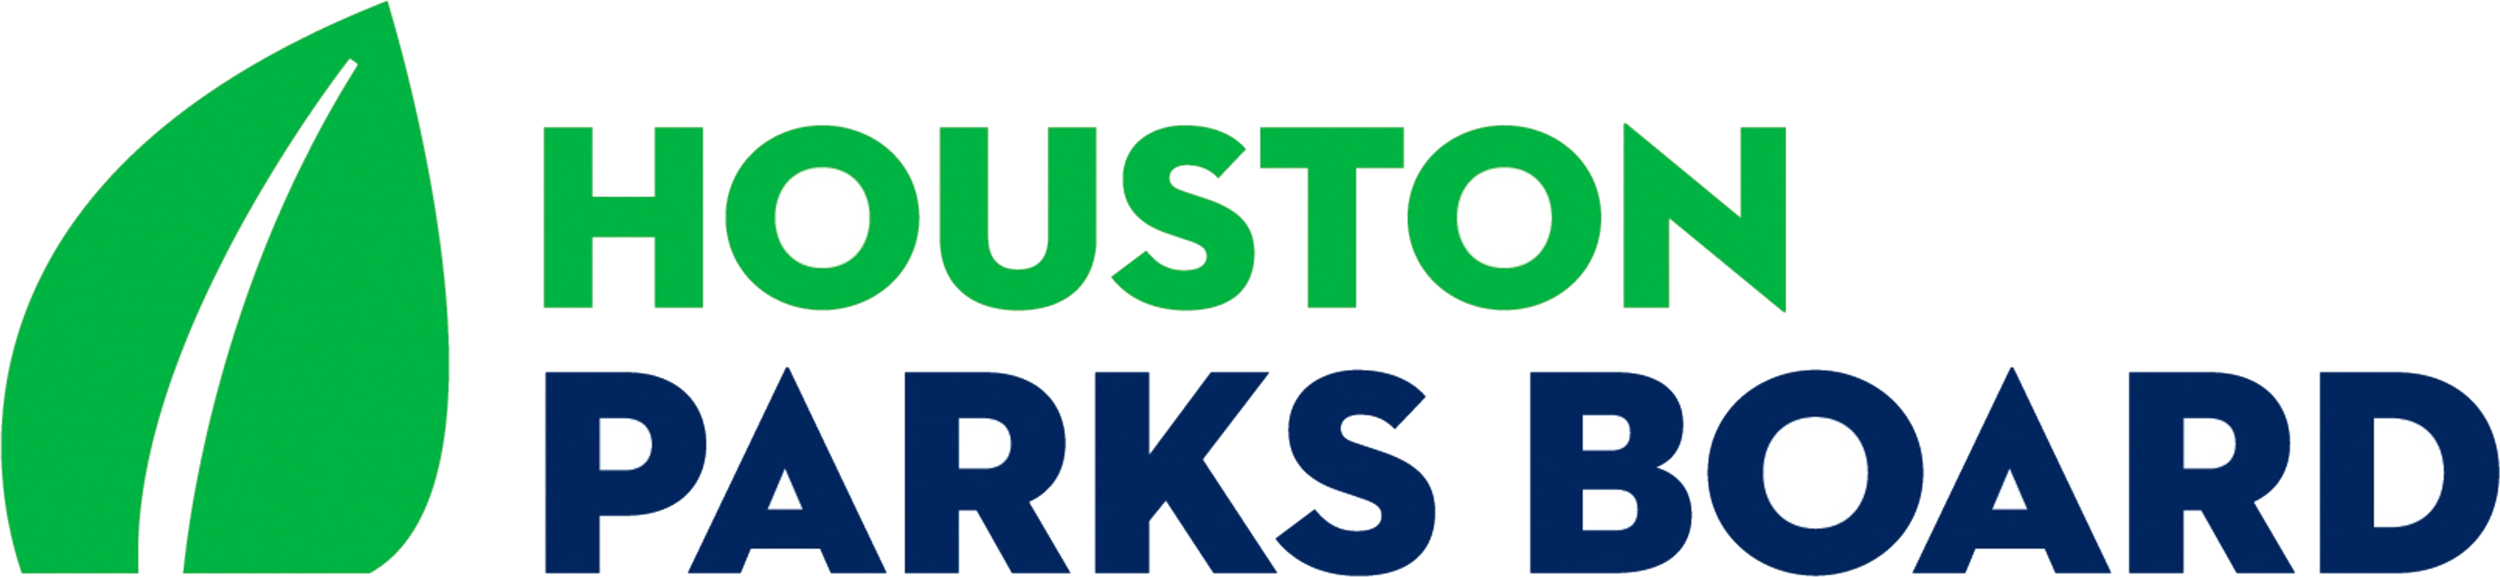 houston-parks-board.png